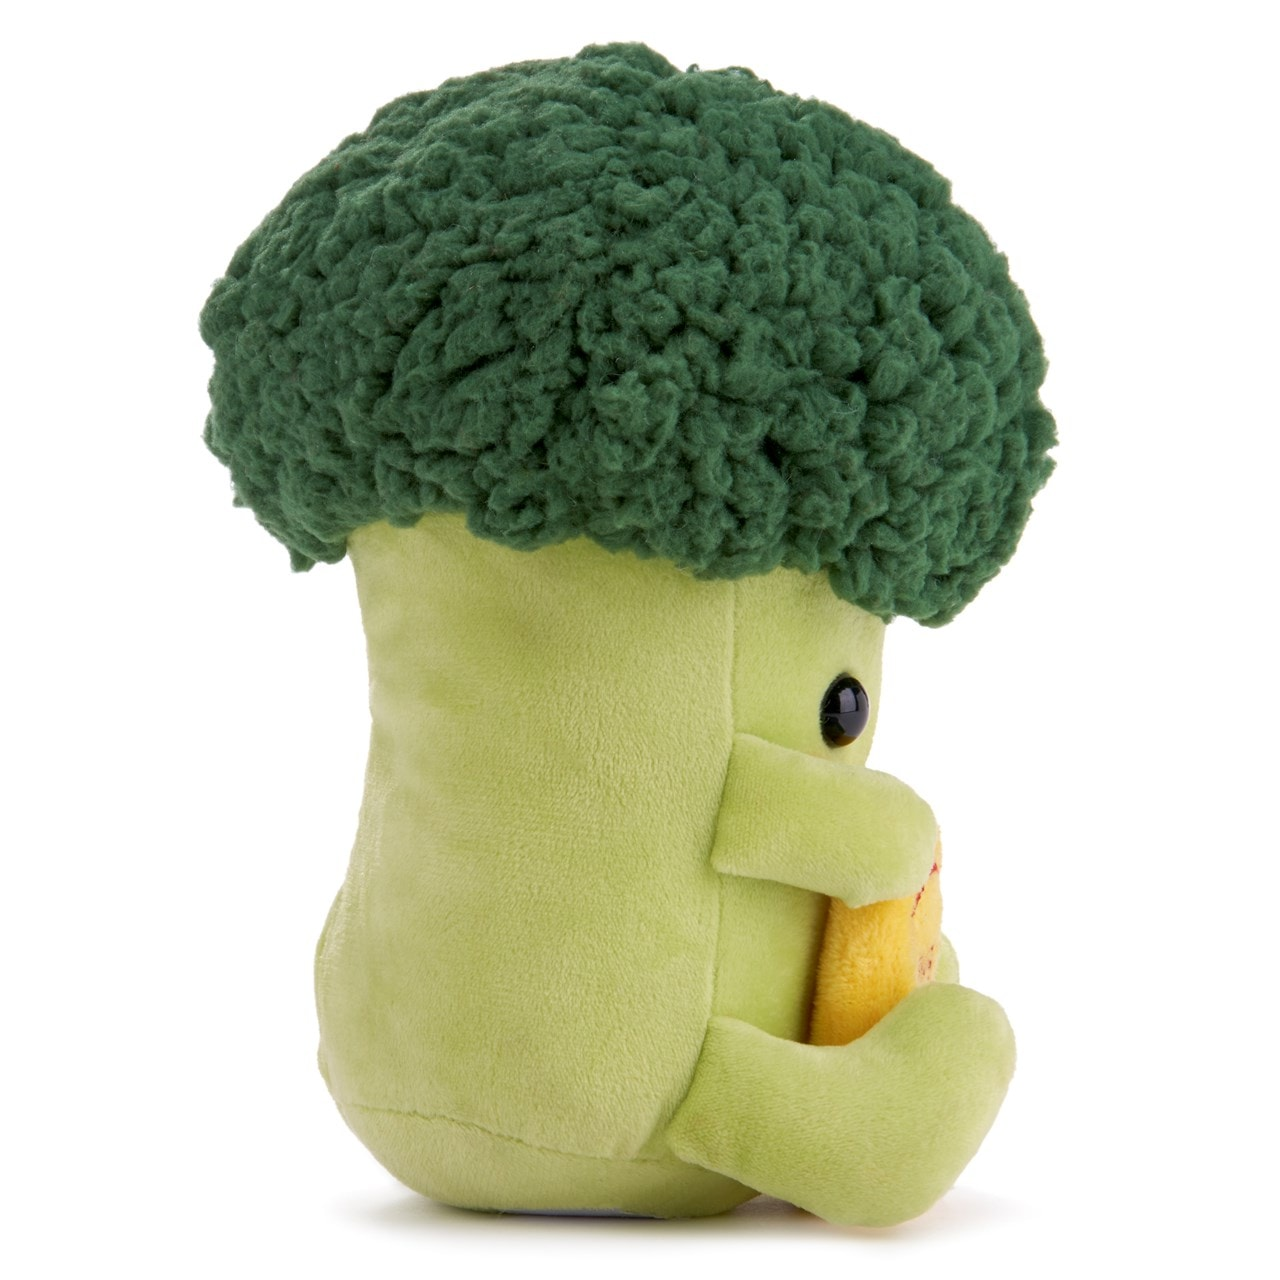 Brian the Broccoli: Swizzles Love Hearts Collection Plush Toy - 3